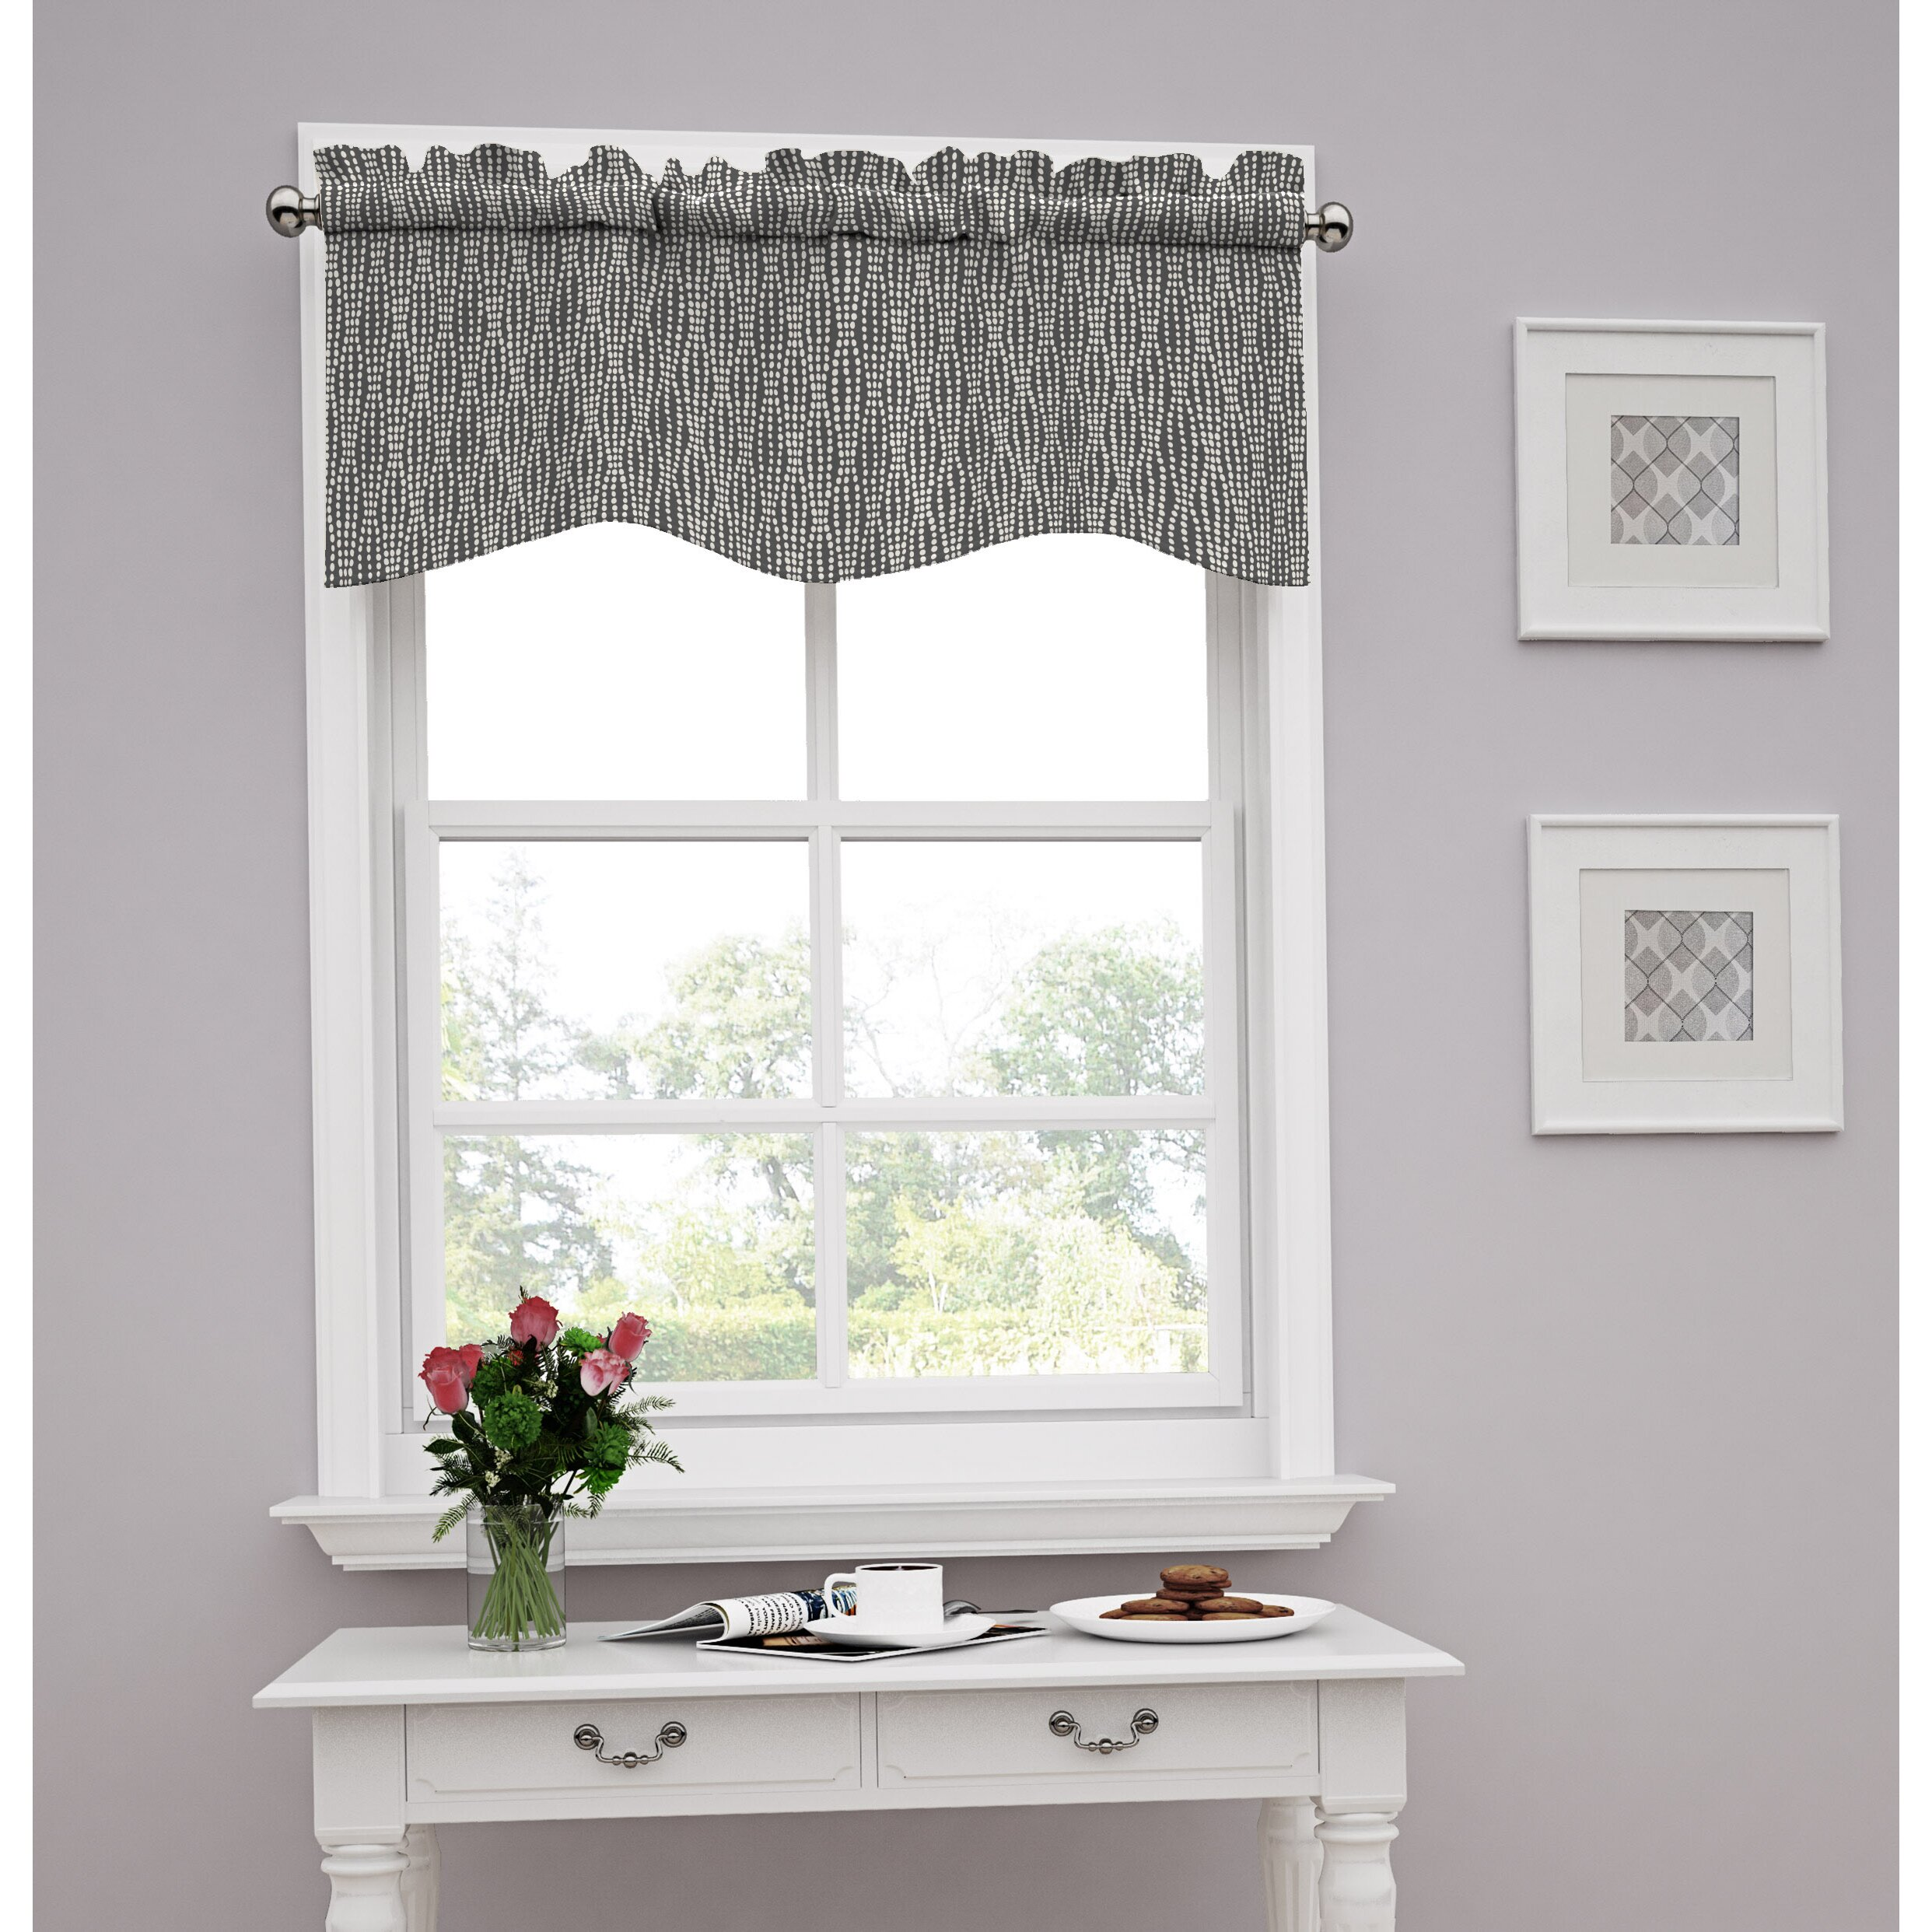 Window Valance For Kitchen Window Valances Cafac Kitchen Curtains Youll Love Wayfair